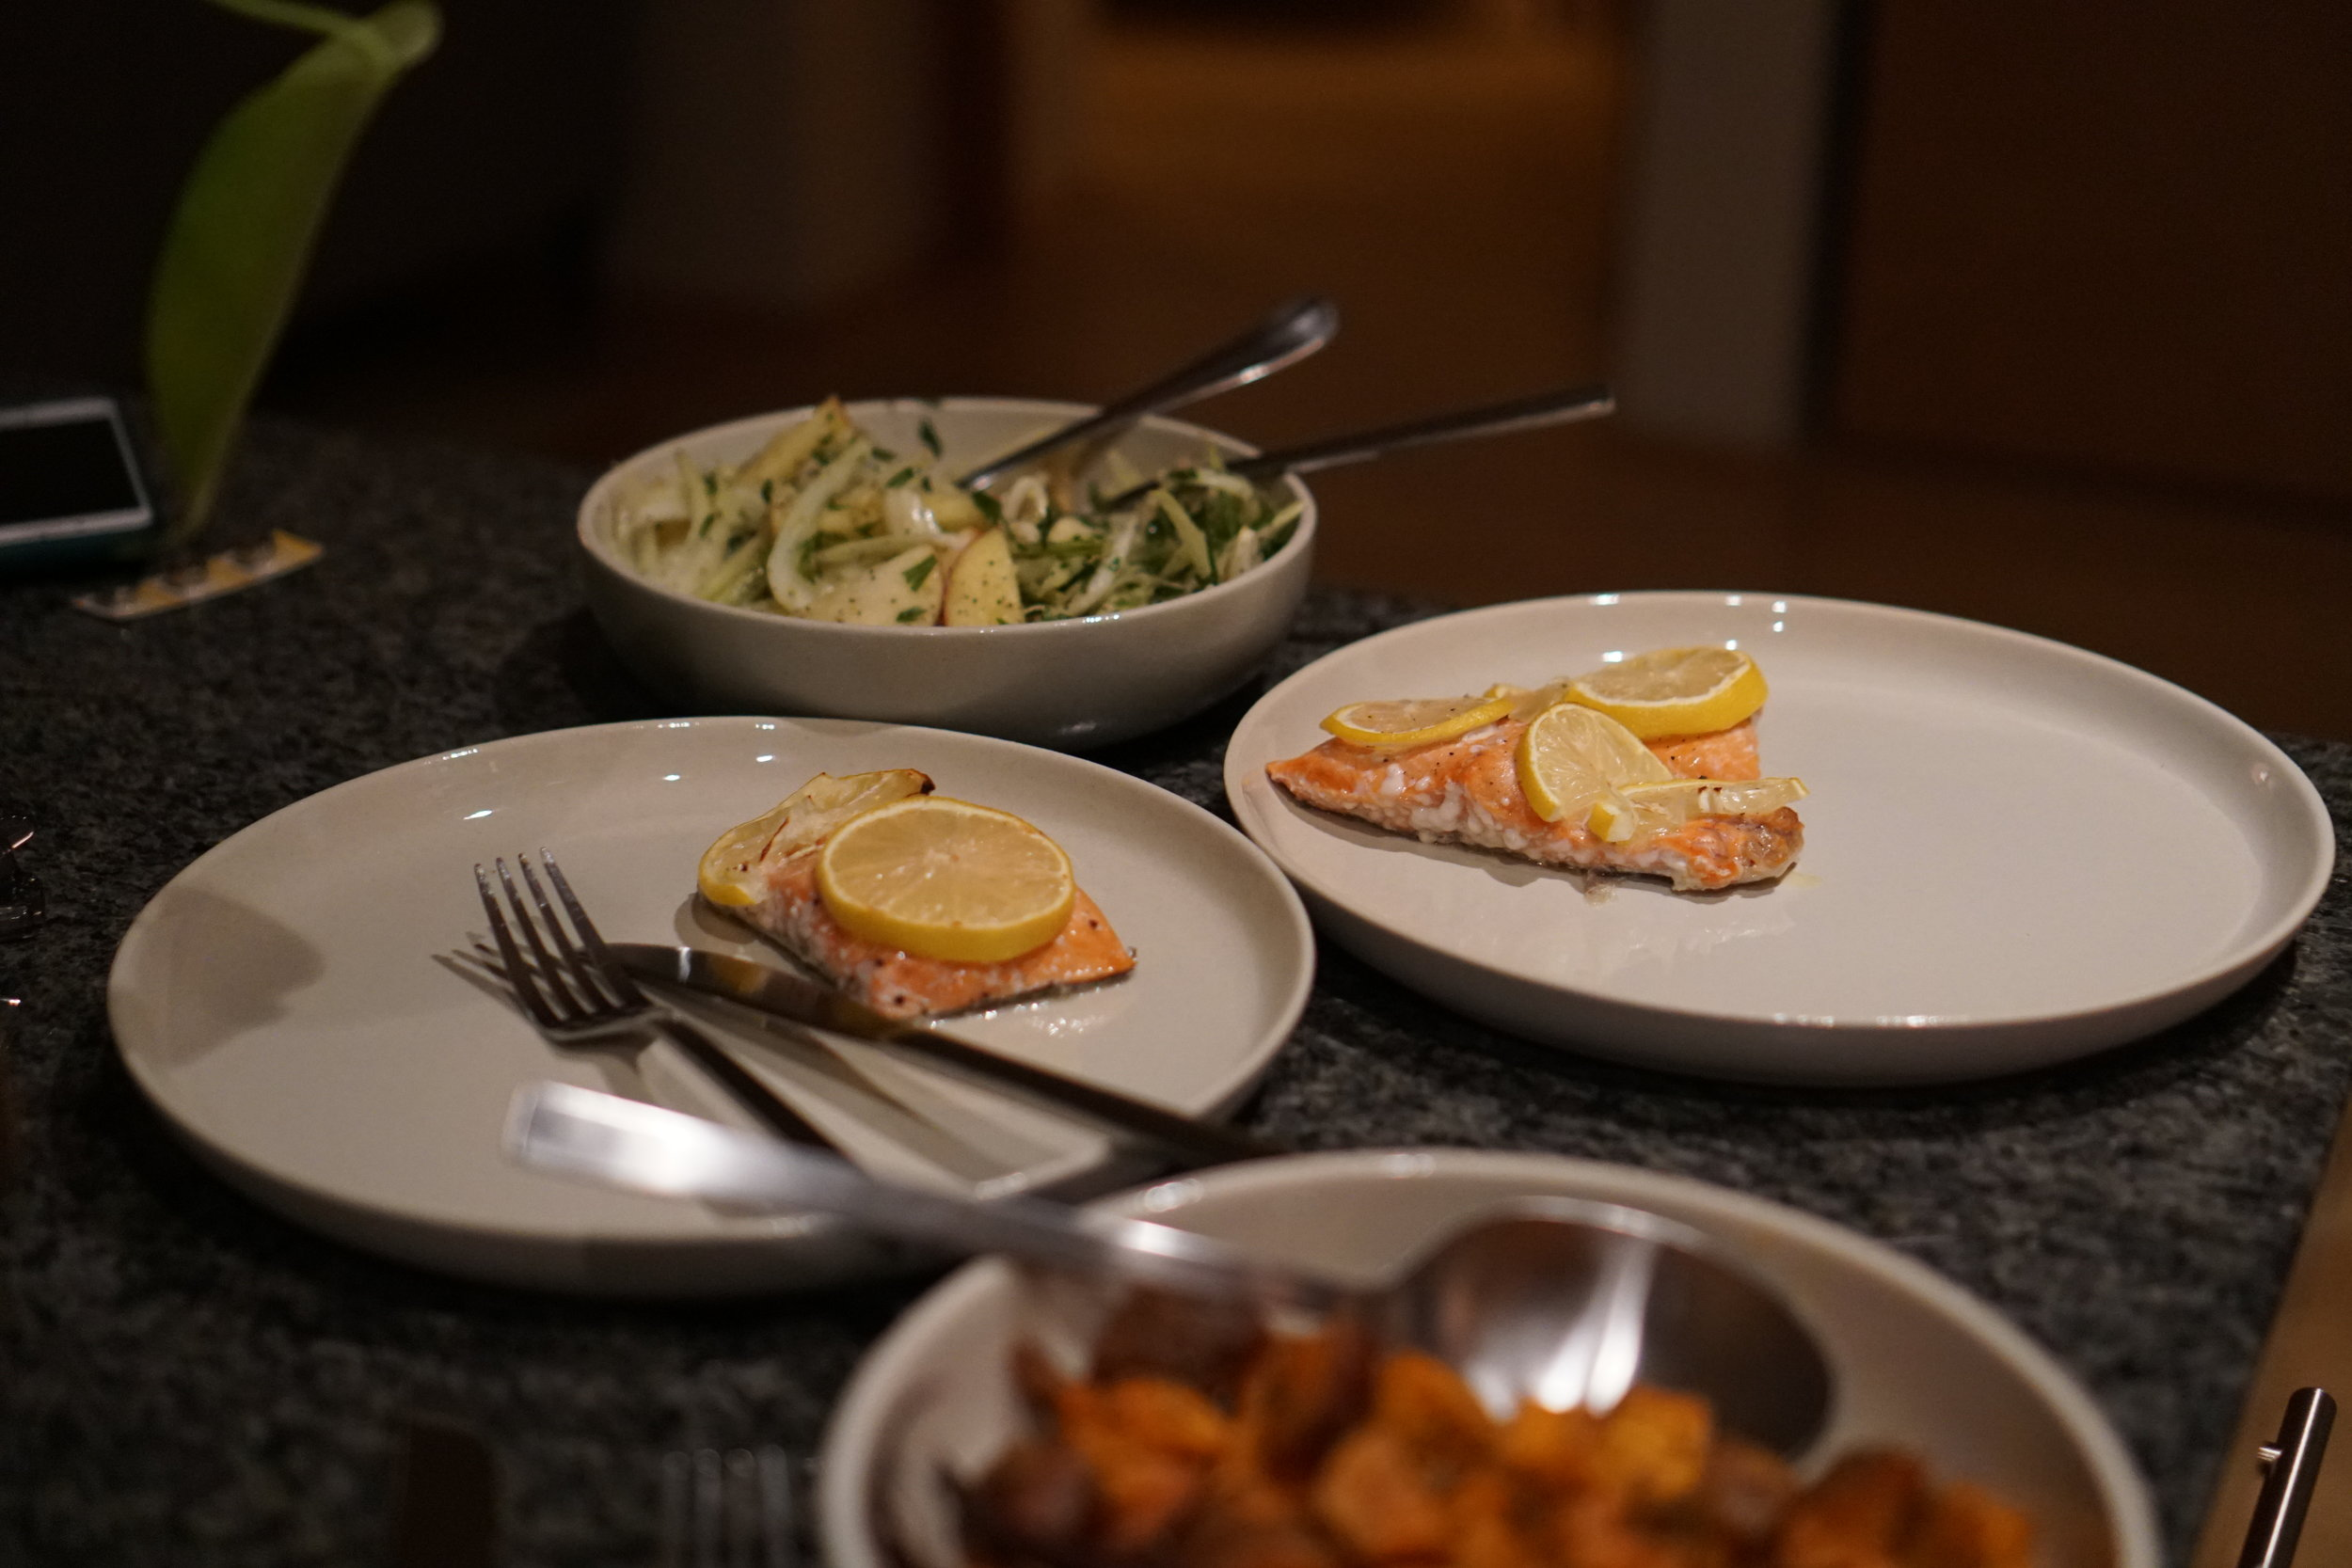 Salmon_Apple-Fennel_Salad_With_Pine_Nuts_Gluten_Free_Paleo_Whole30_9.JPEG